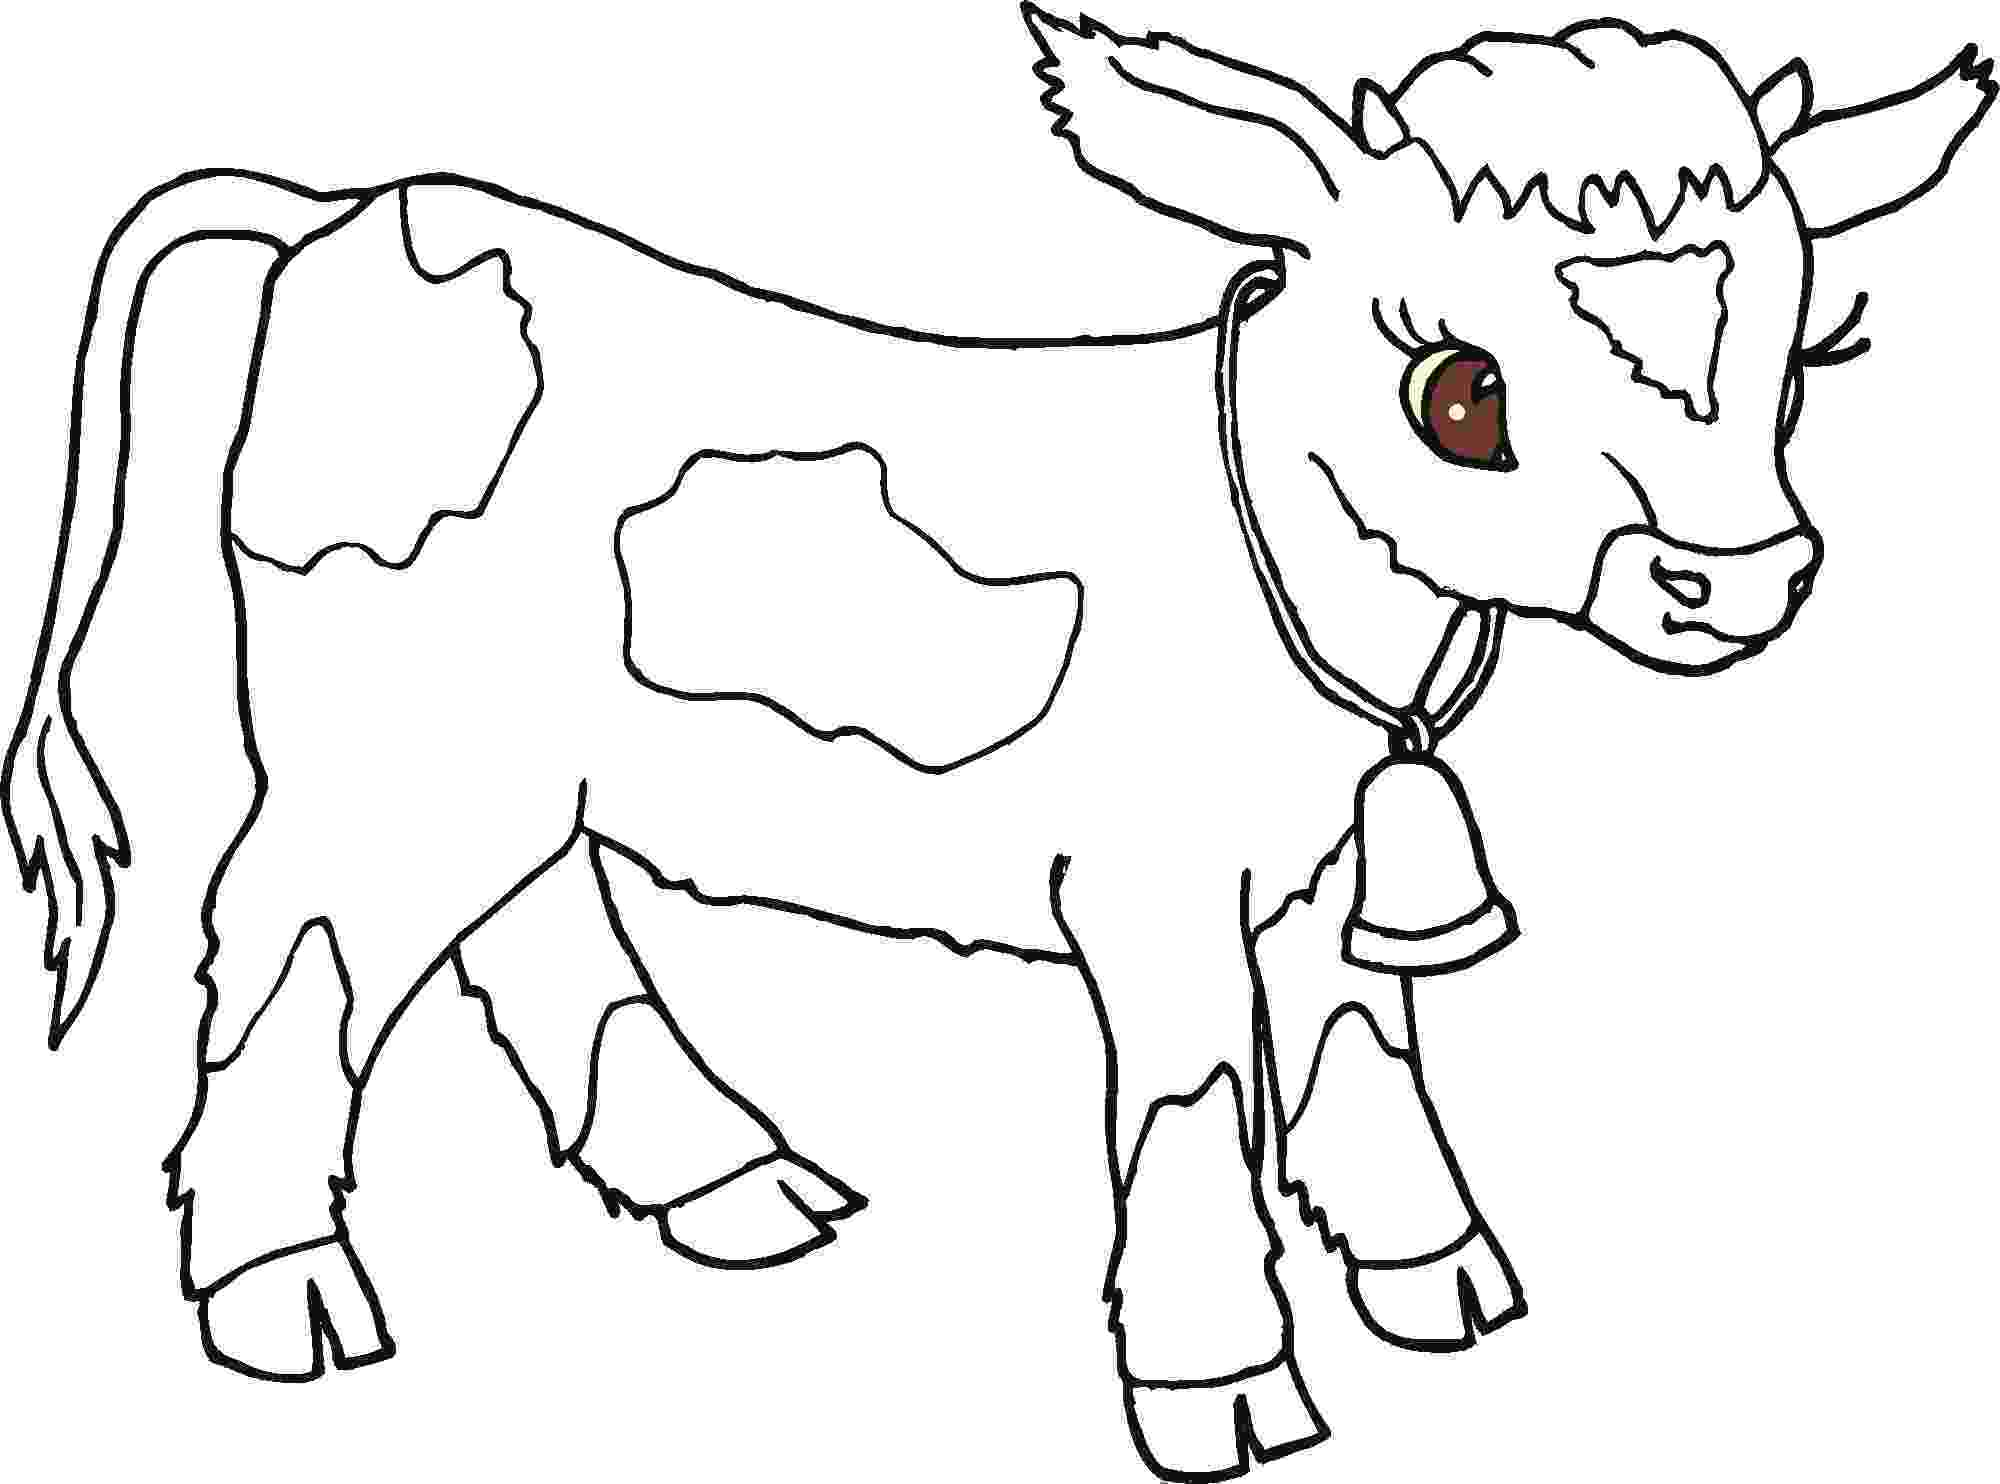 cow colouring sheet cow animals coloring pages for kids printable coloring cow sheet colouring